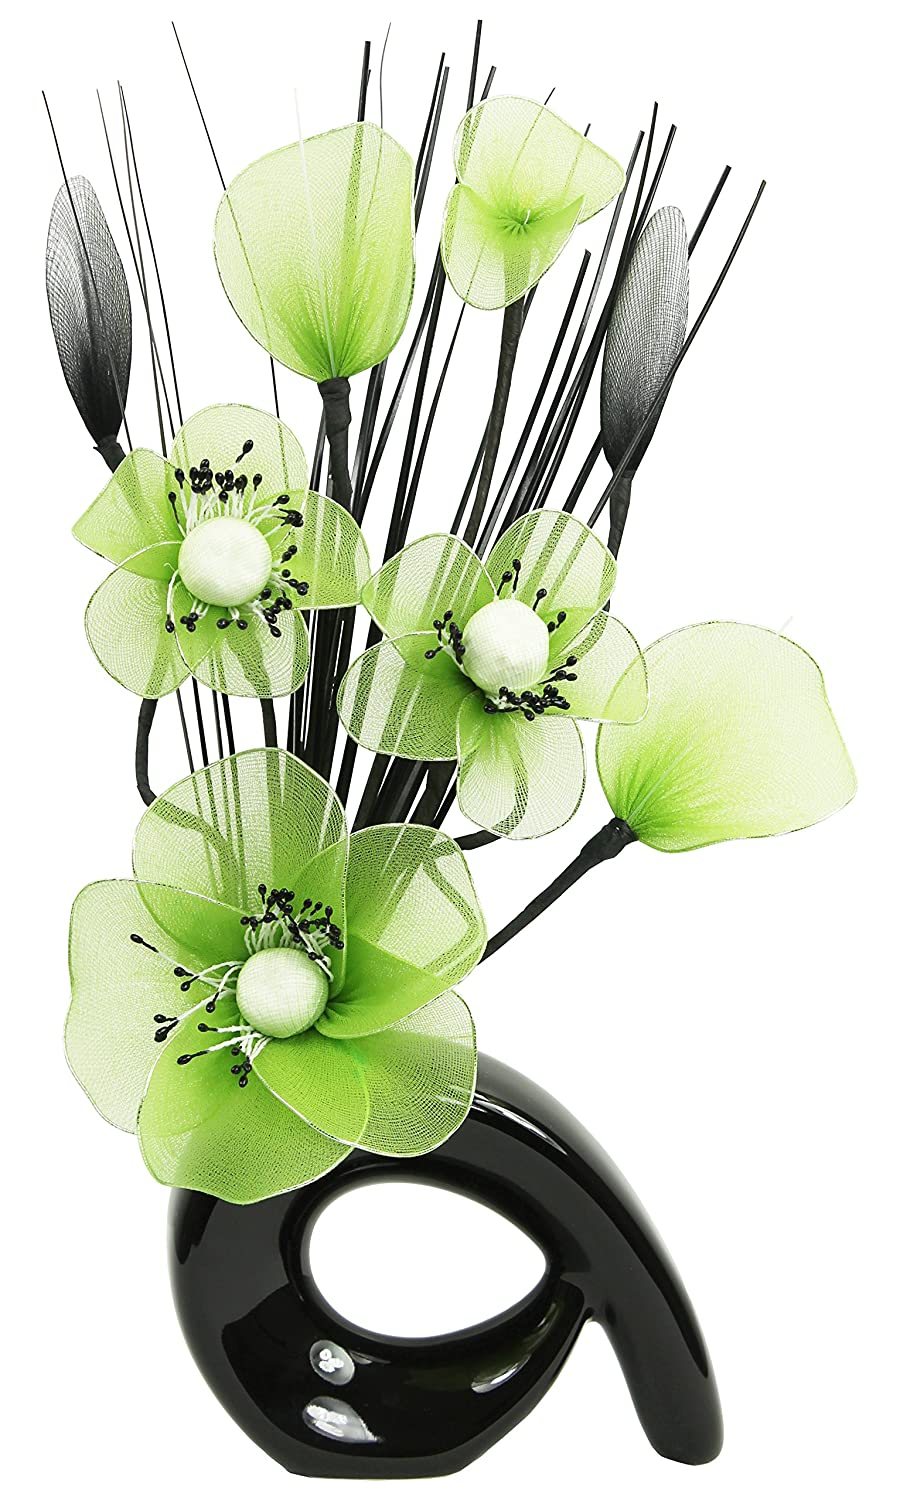 Flourish 793333 QH1 Black Vase with Green Nylon Artificial Flowers in Vase, Fake Flowers, Ornaments, Small Gift, Home Accessories, 32cm